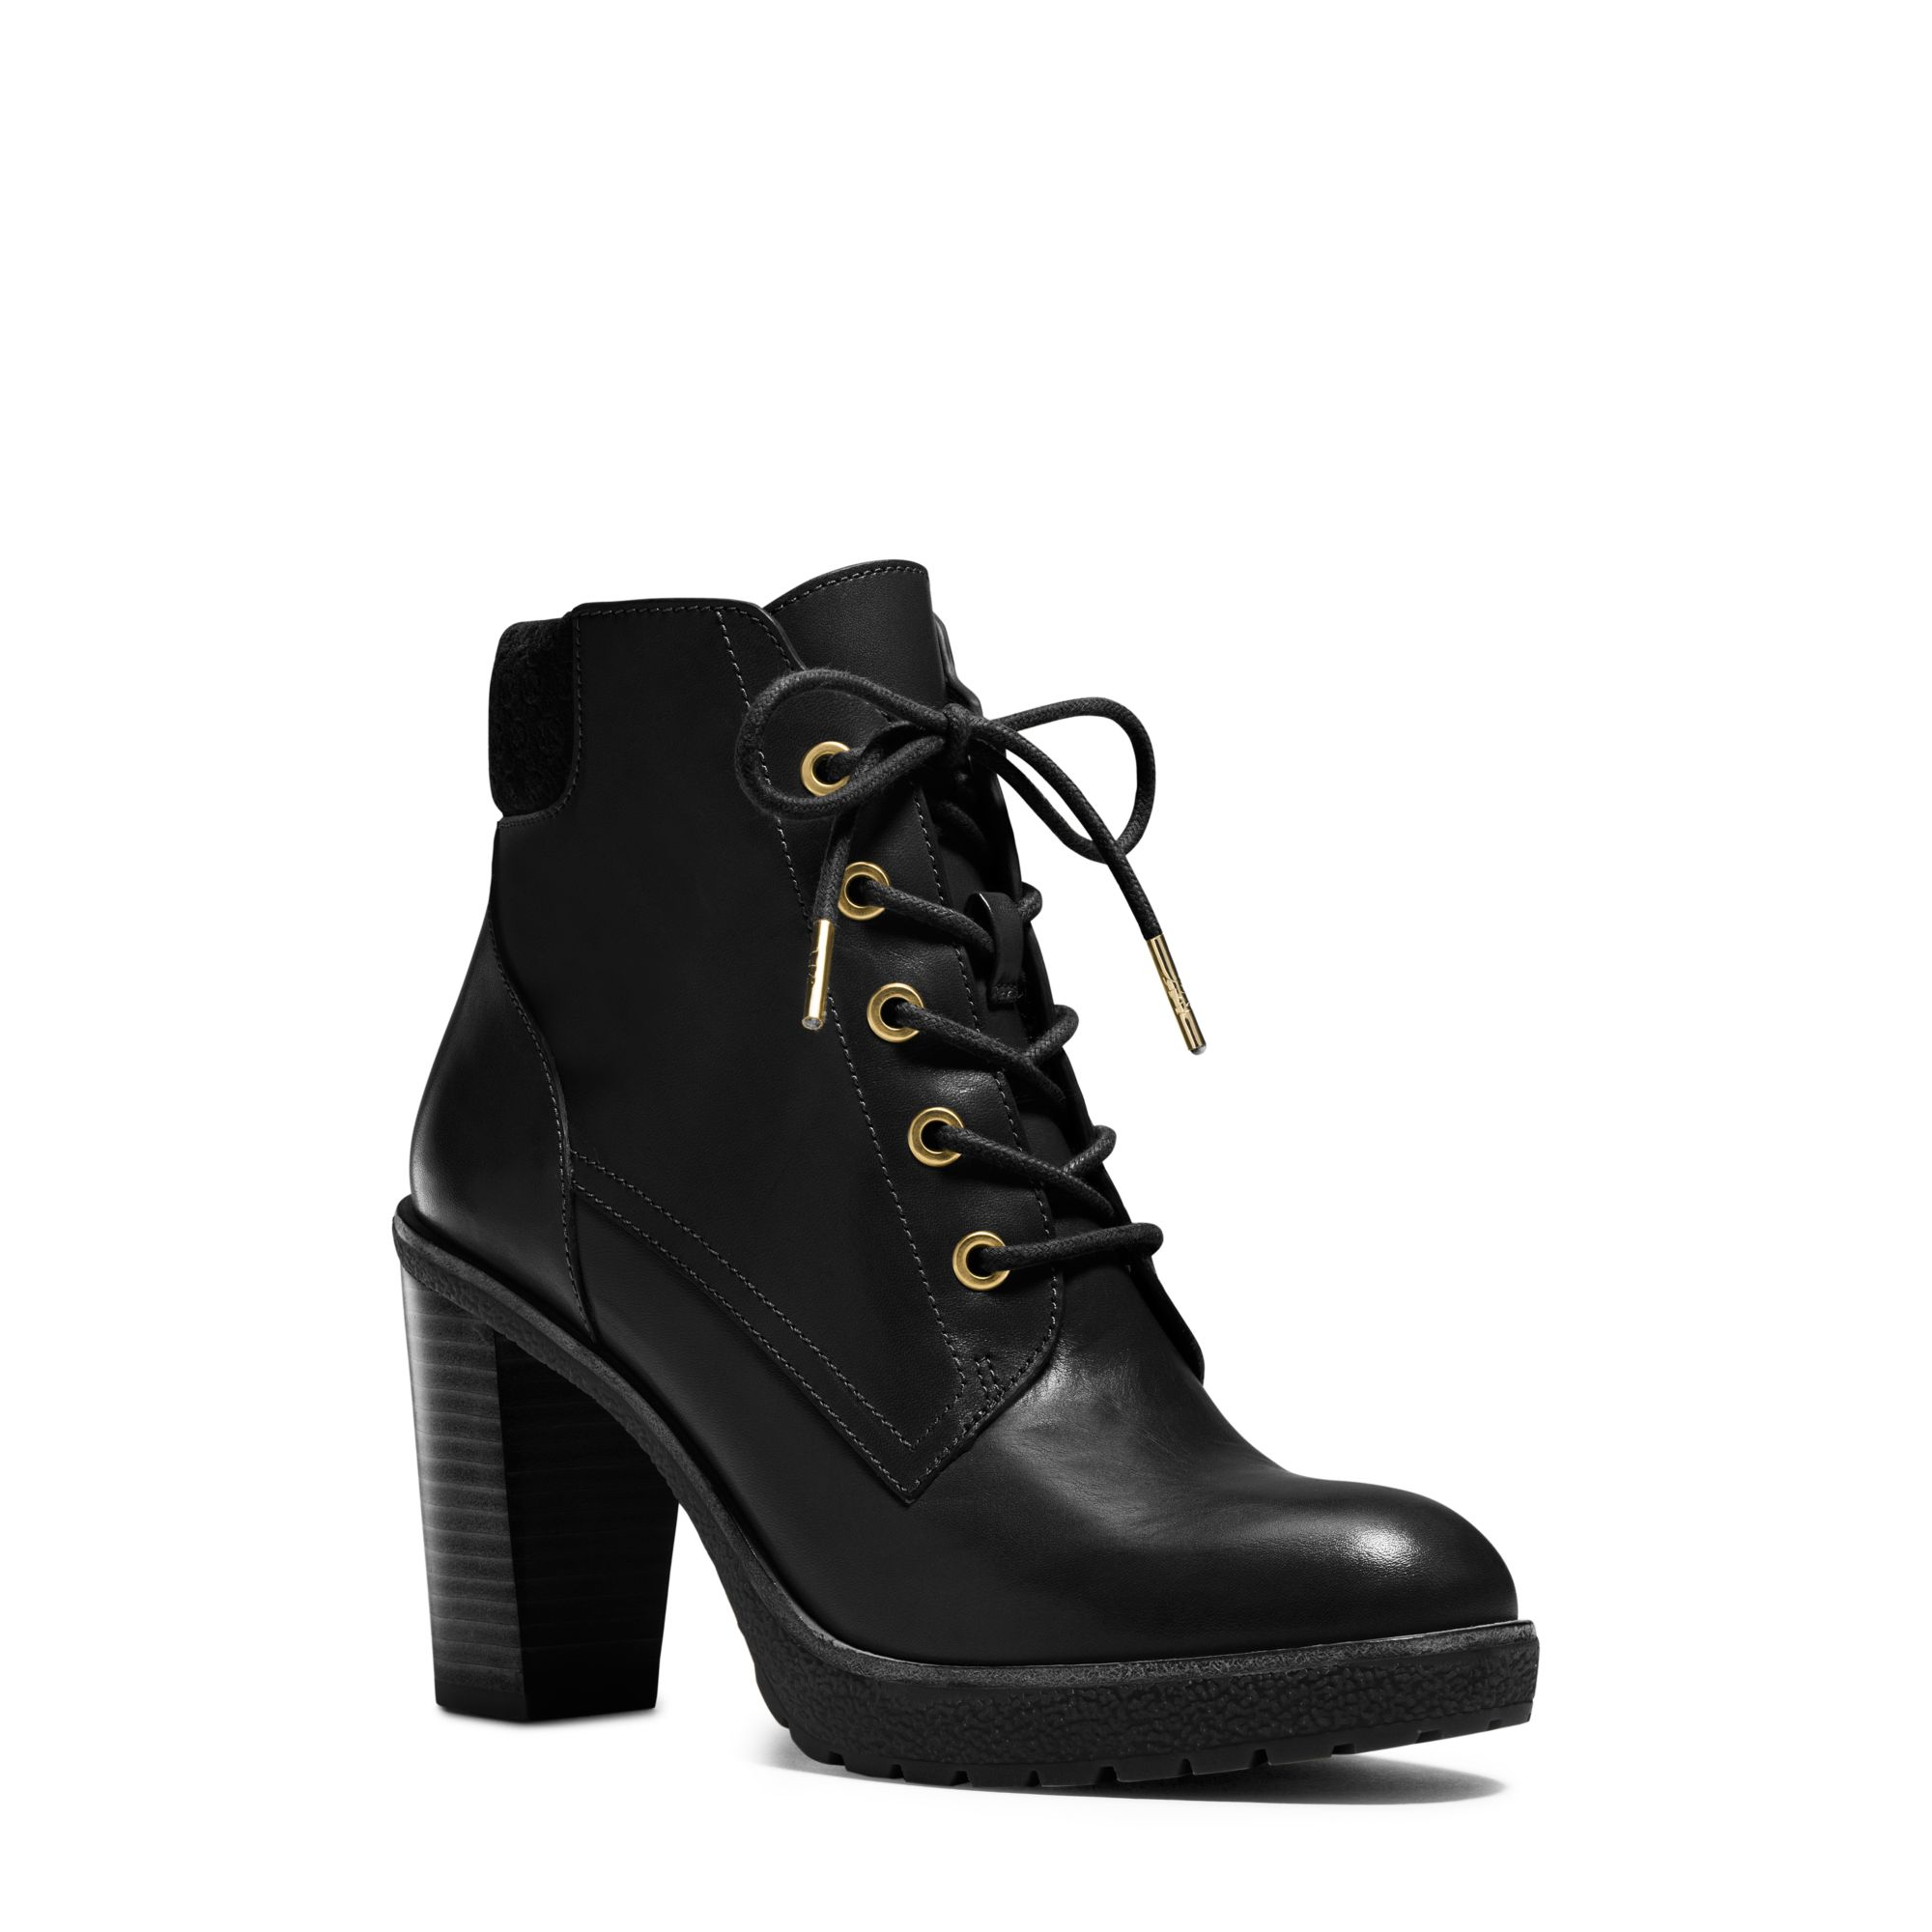 lyst michael kors kim lace up leather ankle boot in black. Black Bedroom Furniture Sets. Home Design Ideas